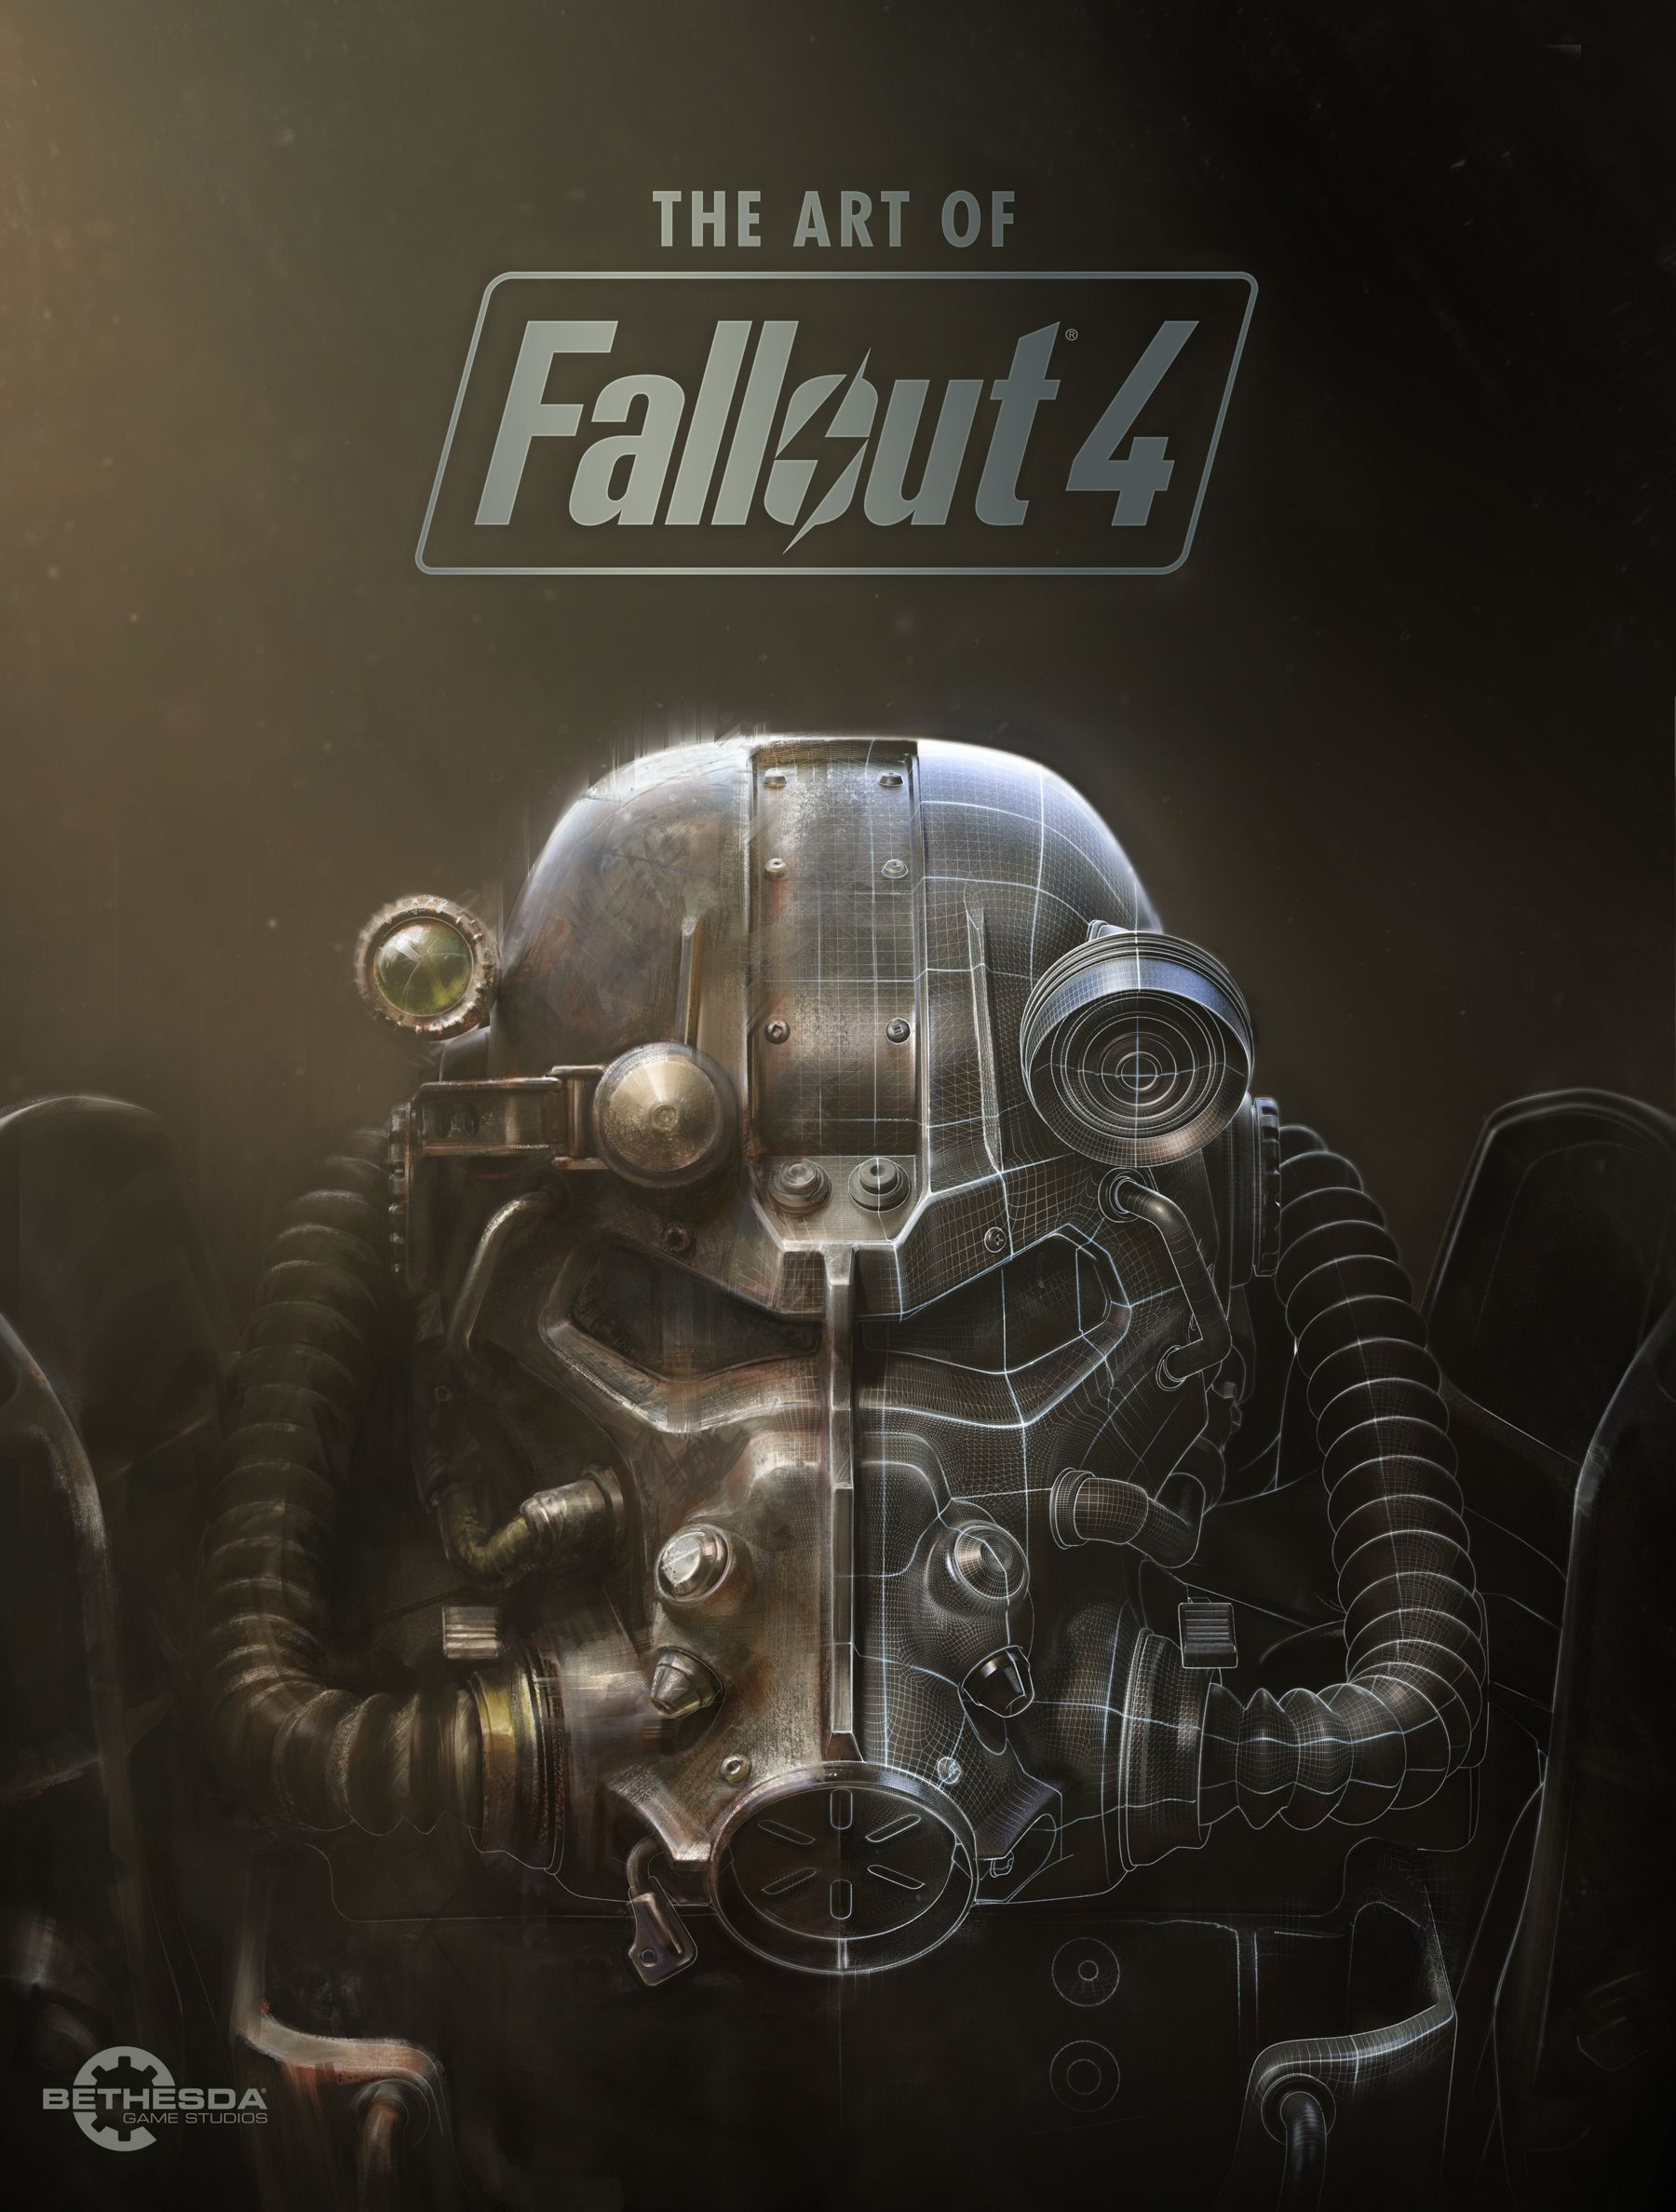 The Art of Fallout 4 (16 pics)